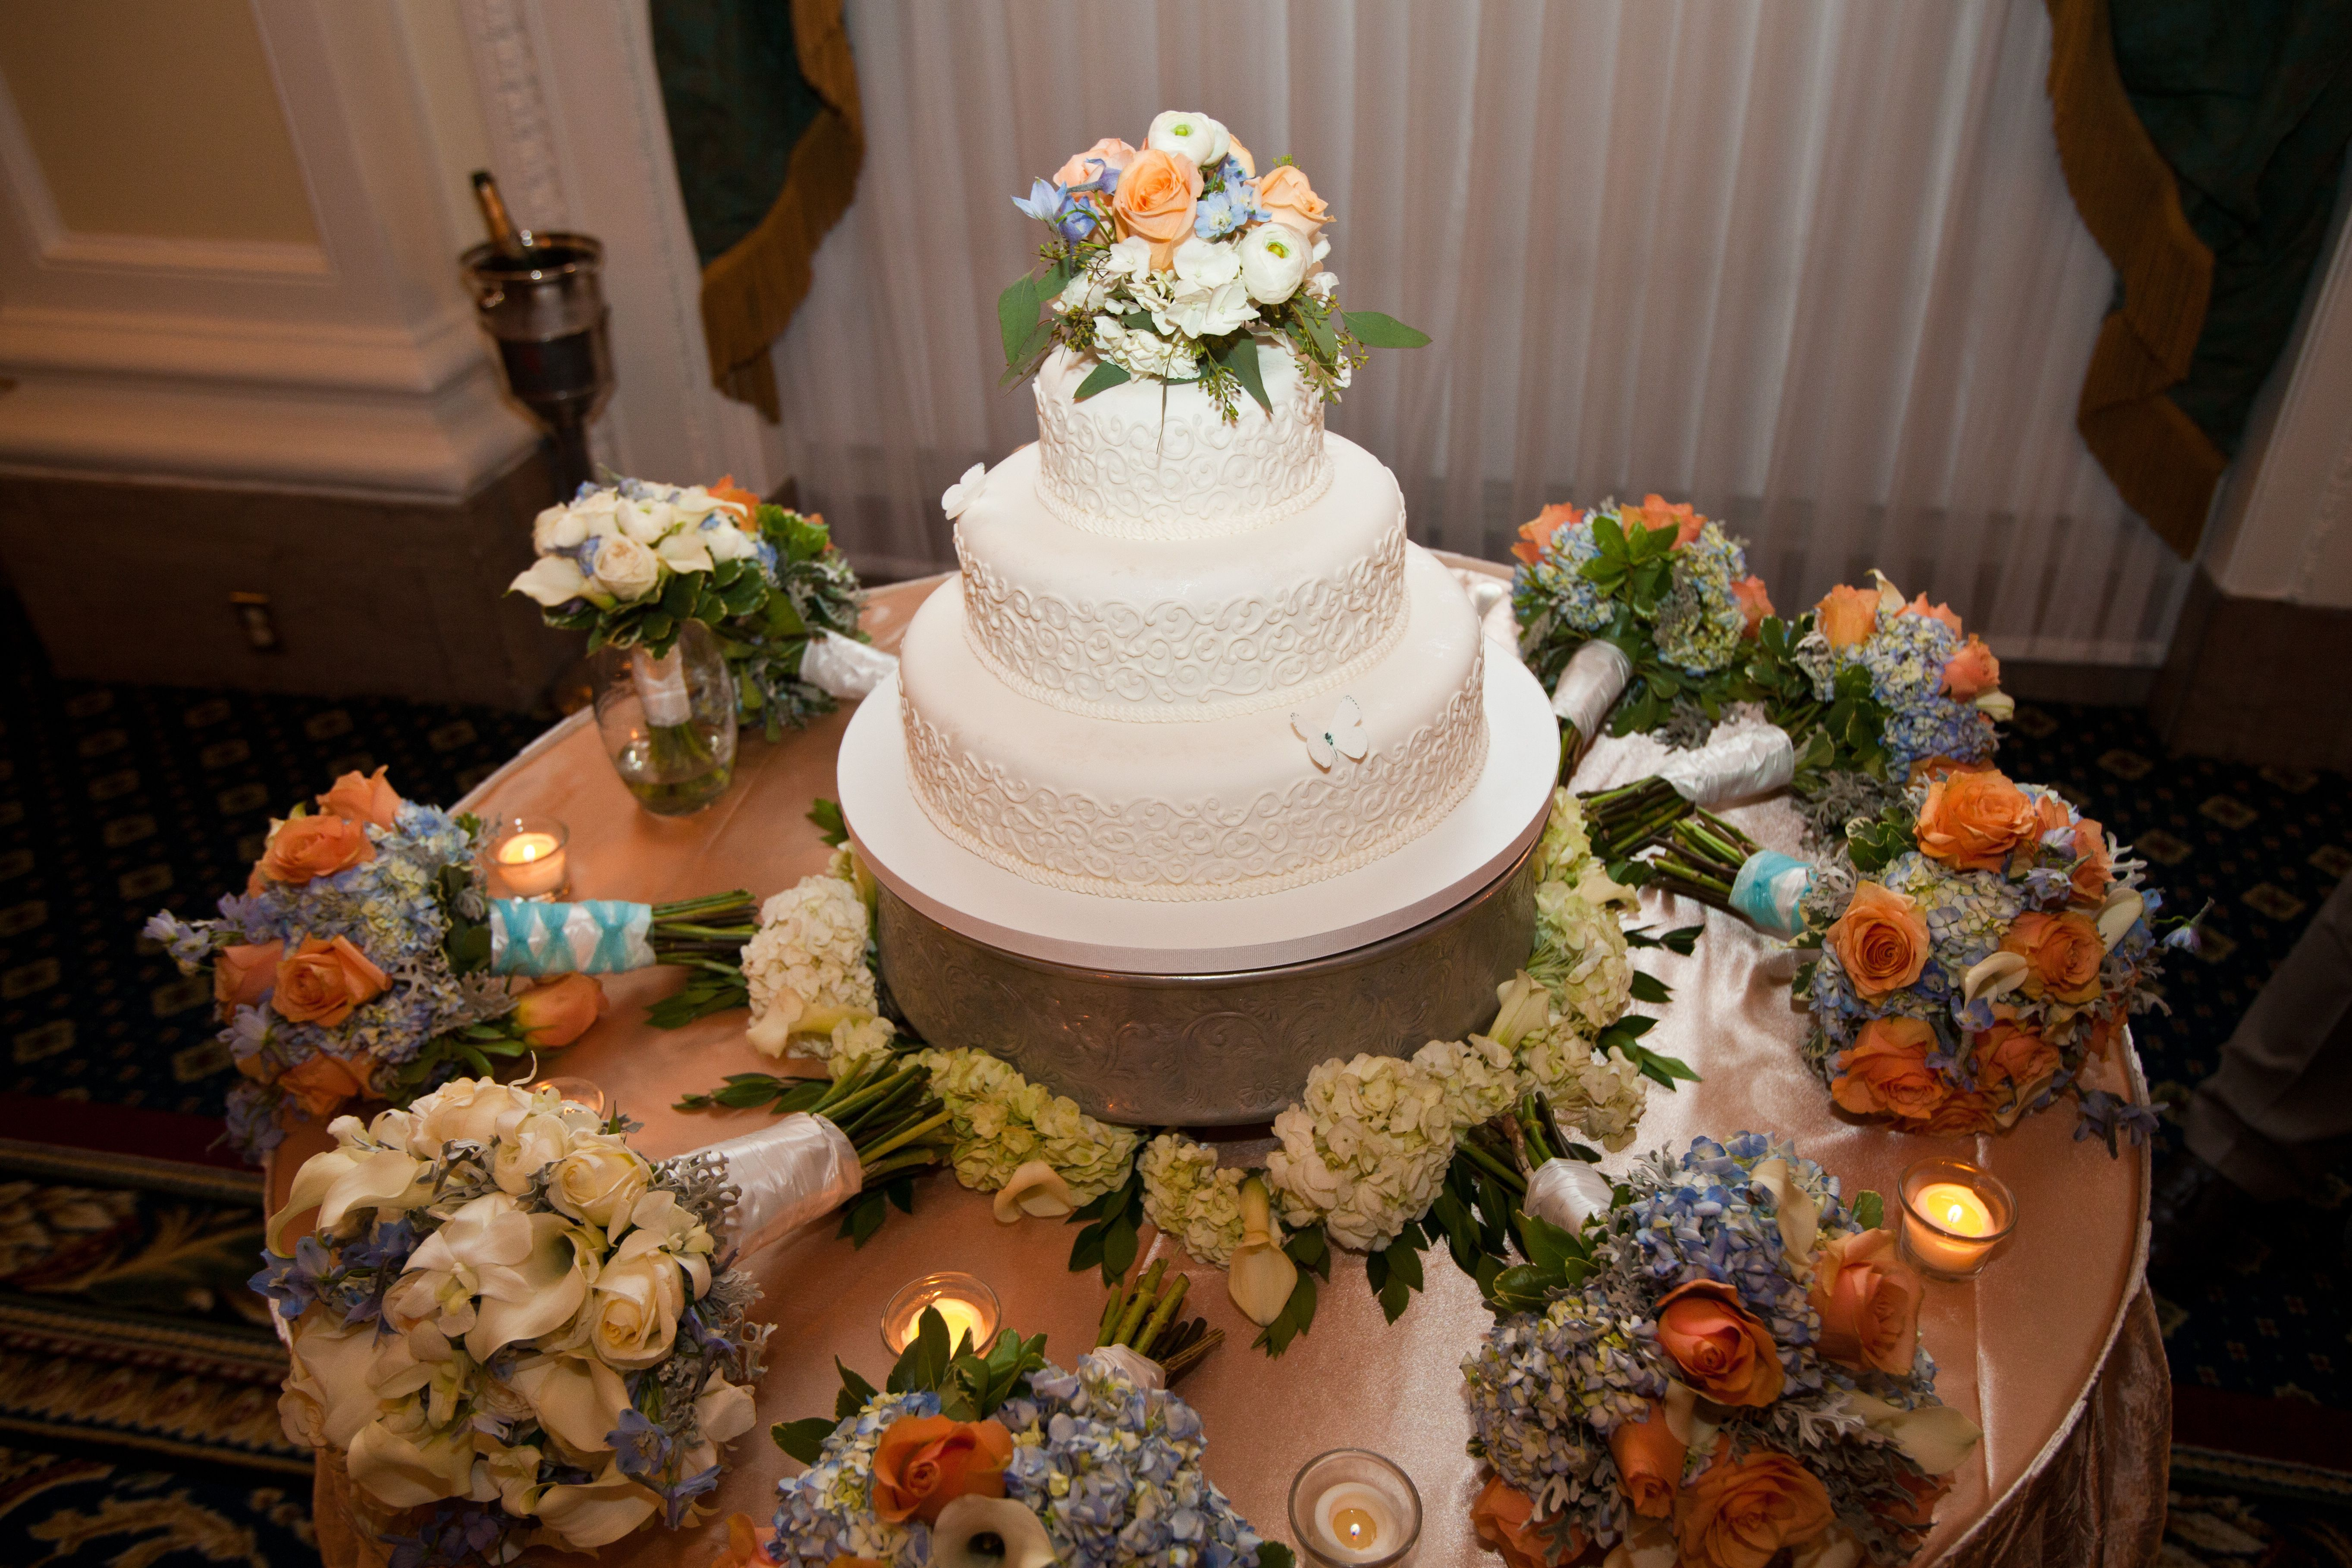 Floral cake topper and a ring of hydrangeas around the